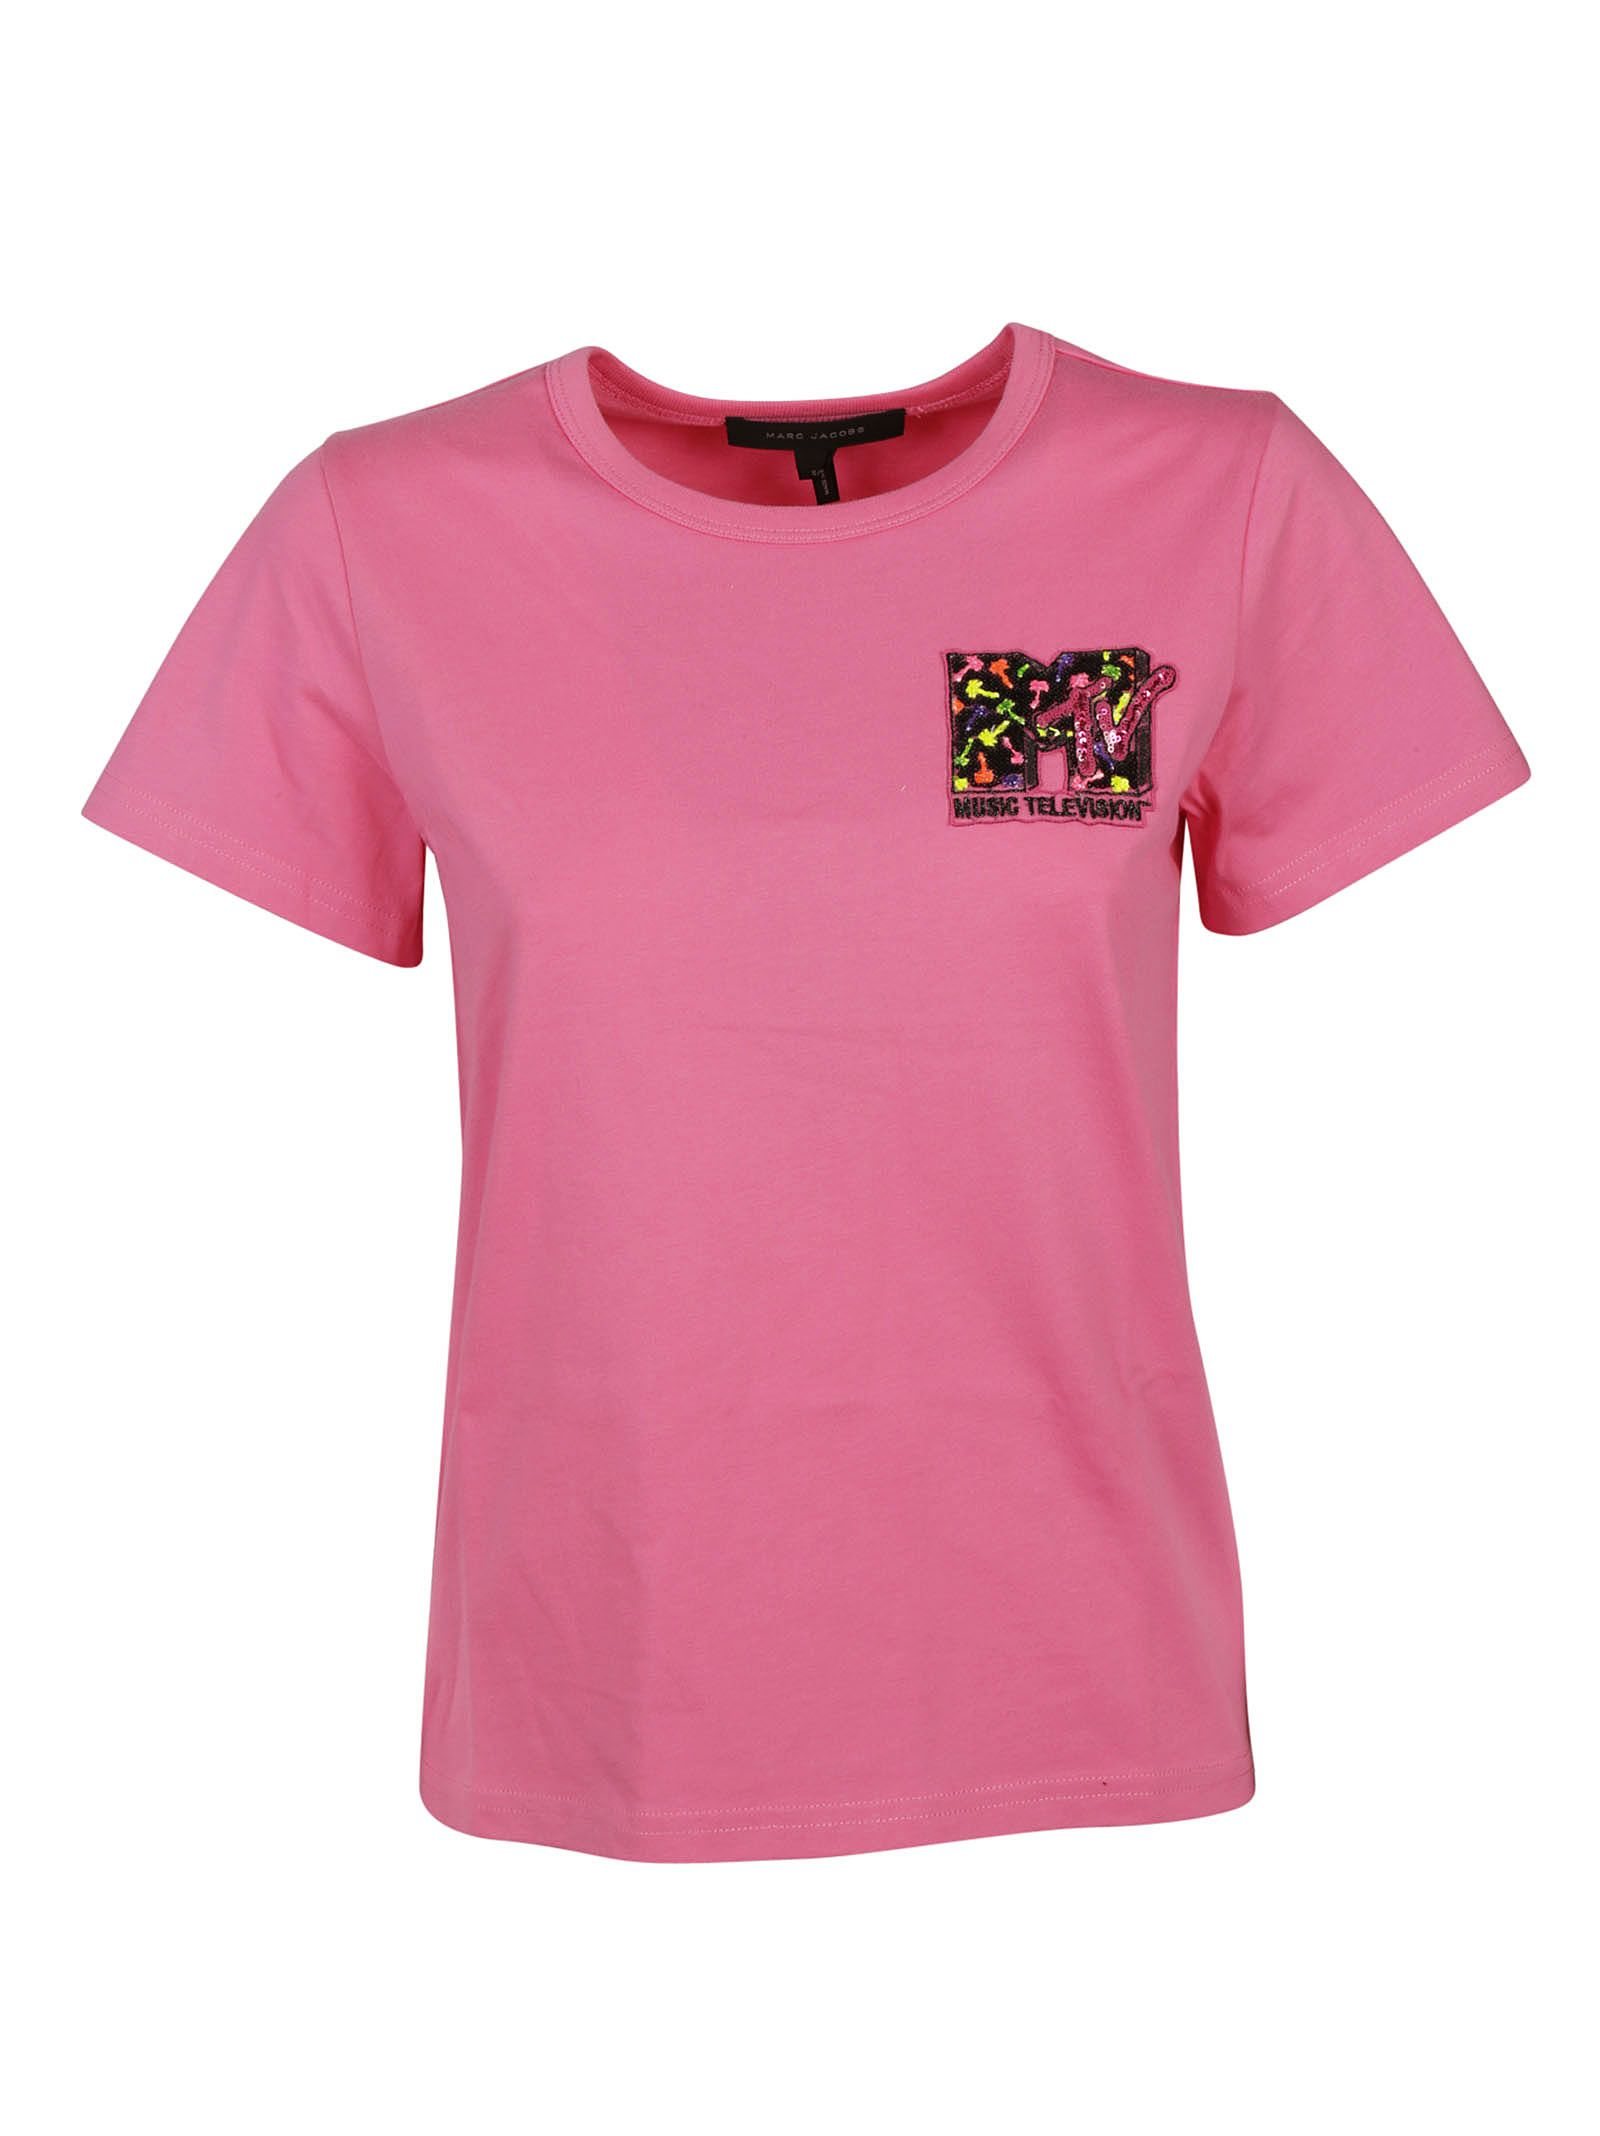 Marc Jacobs Mtv T-shirt